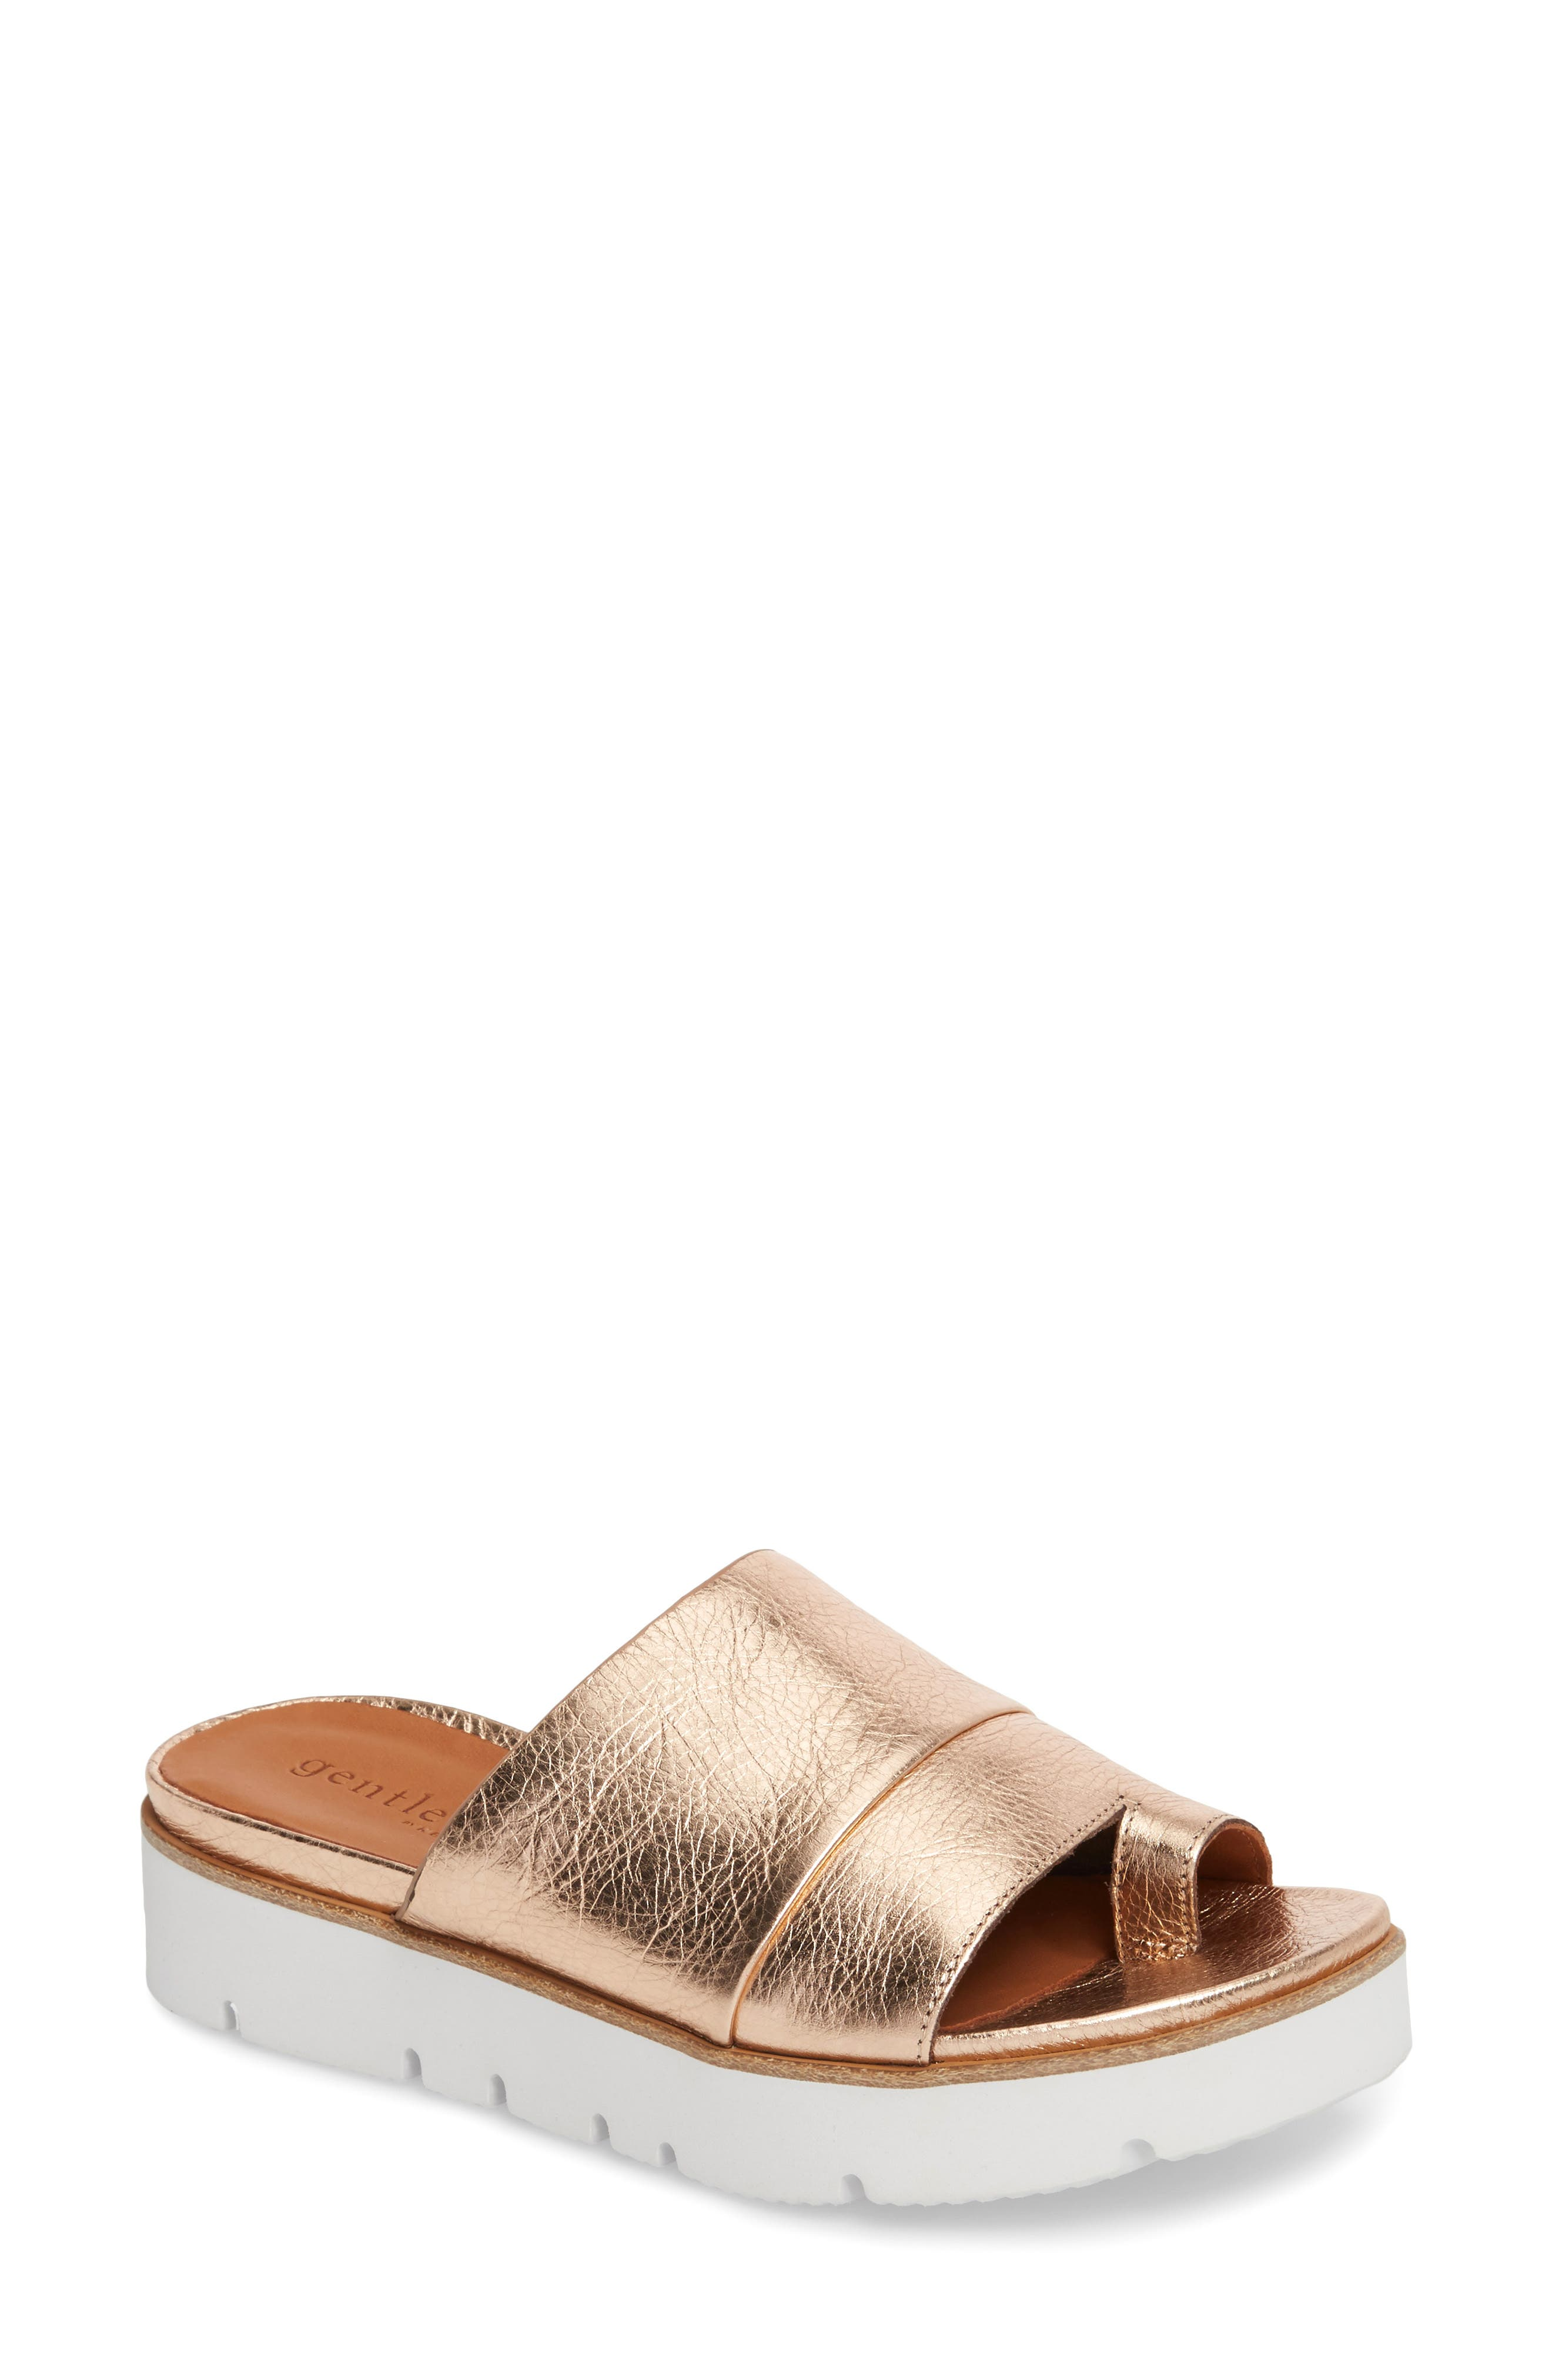 GENTLE SOULS BY KENNETH COLE, Lavern Slide Sandal, Main thumbnail 1, color, ROSE GOLD METALLIC LEATHER